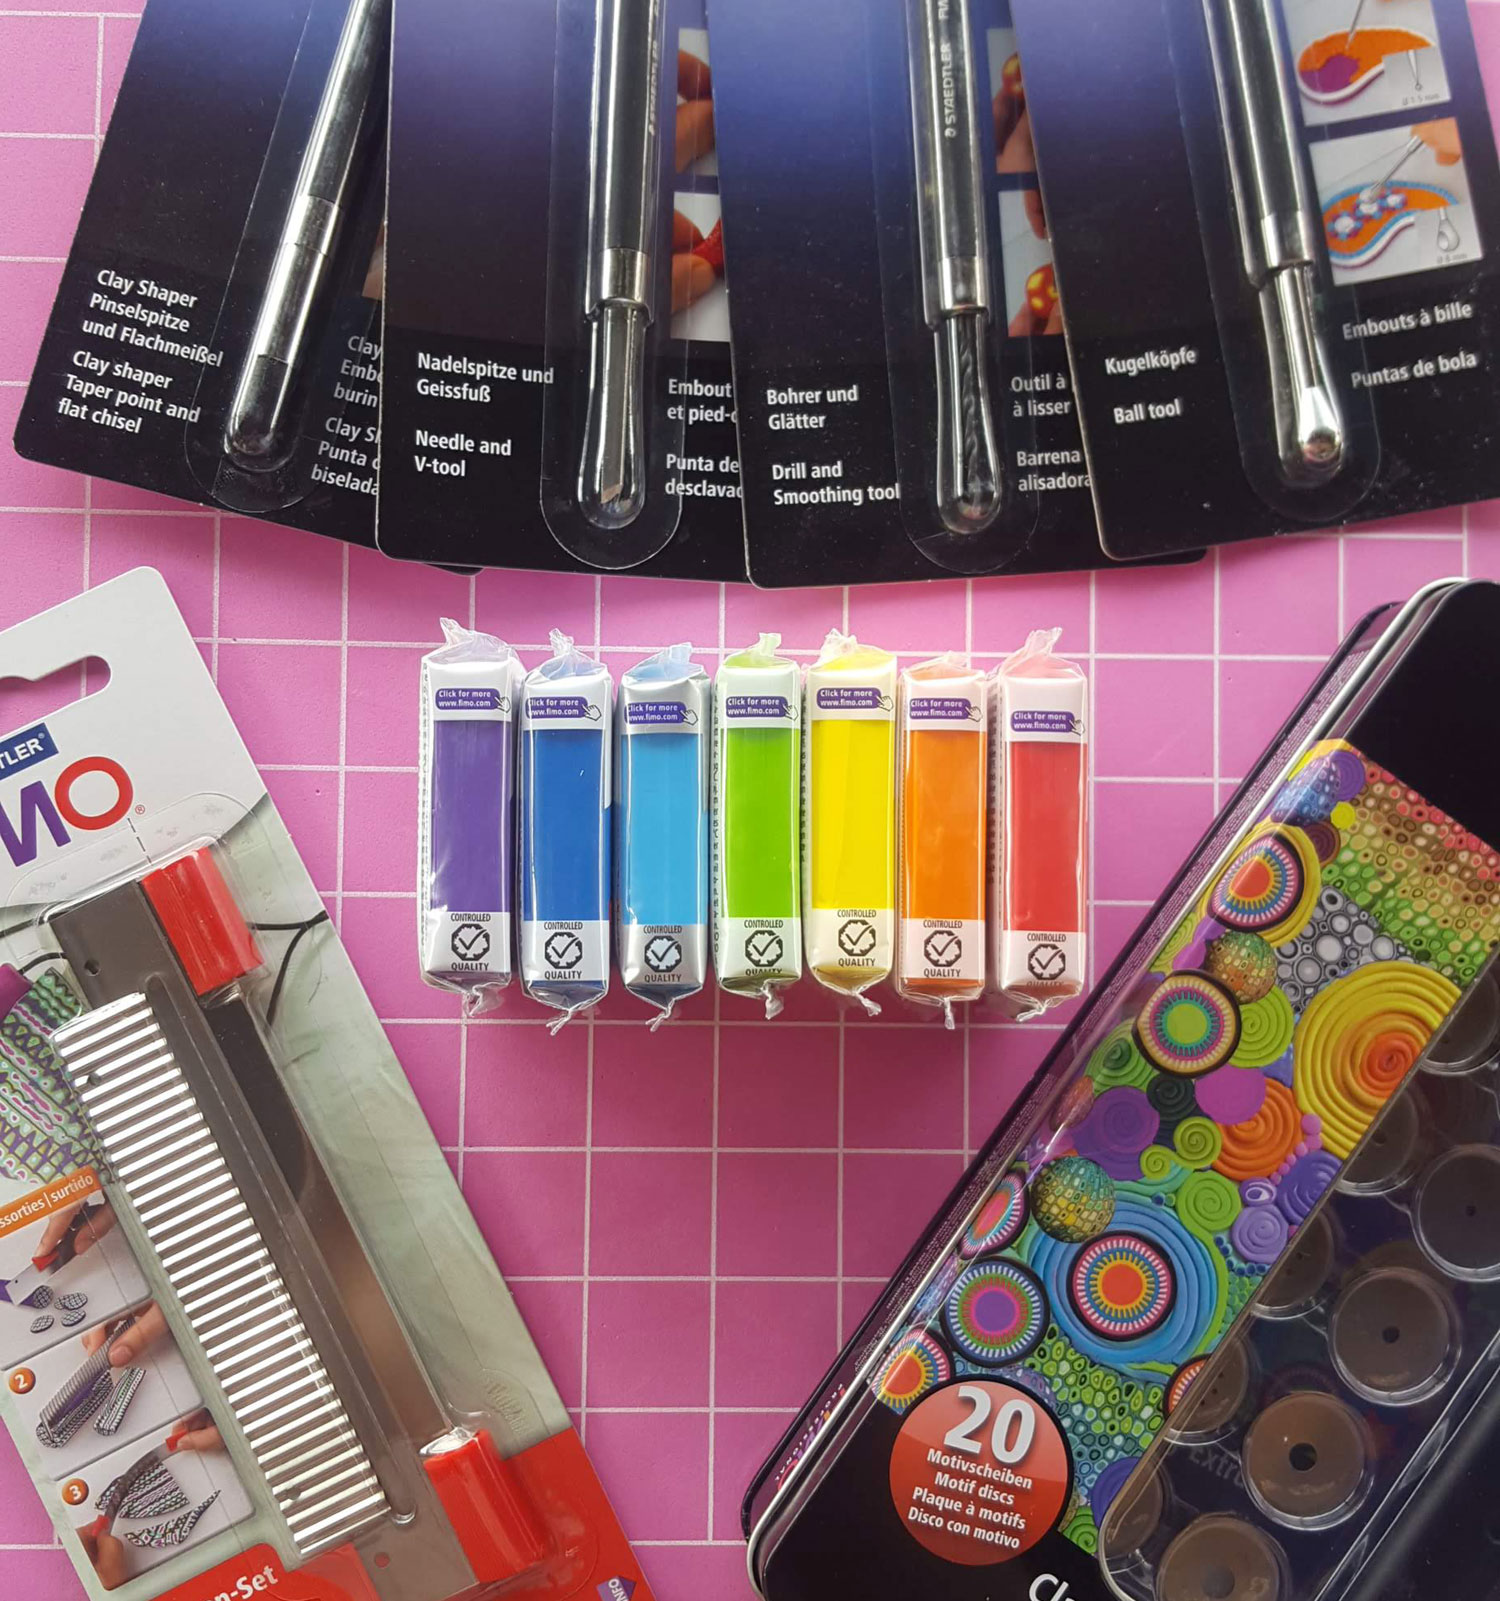 10 facts about Fimo polymer clay